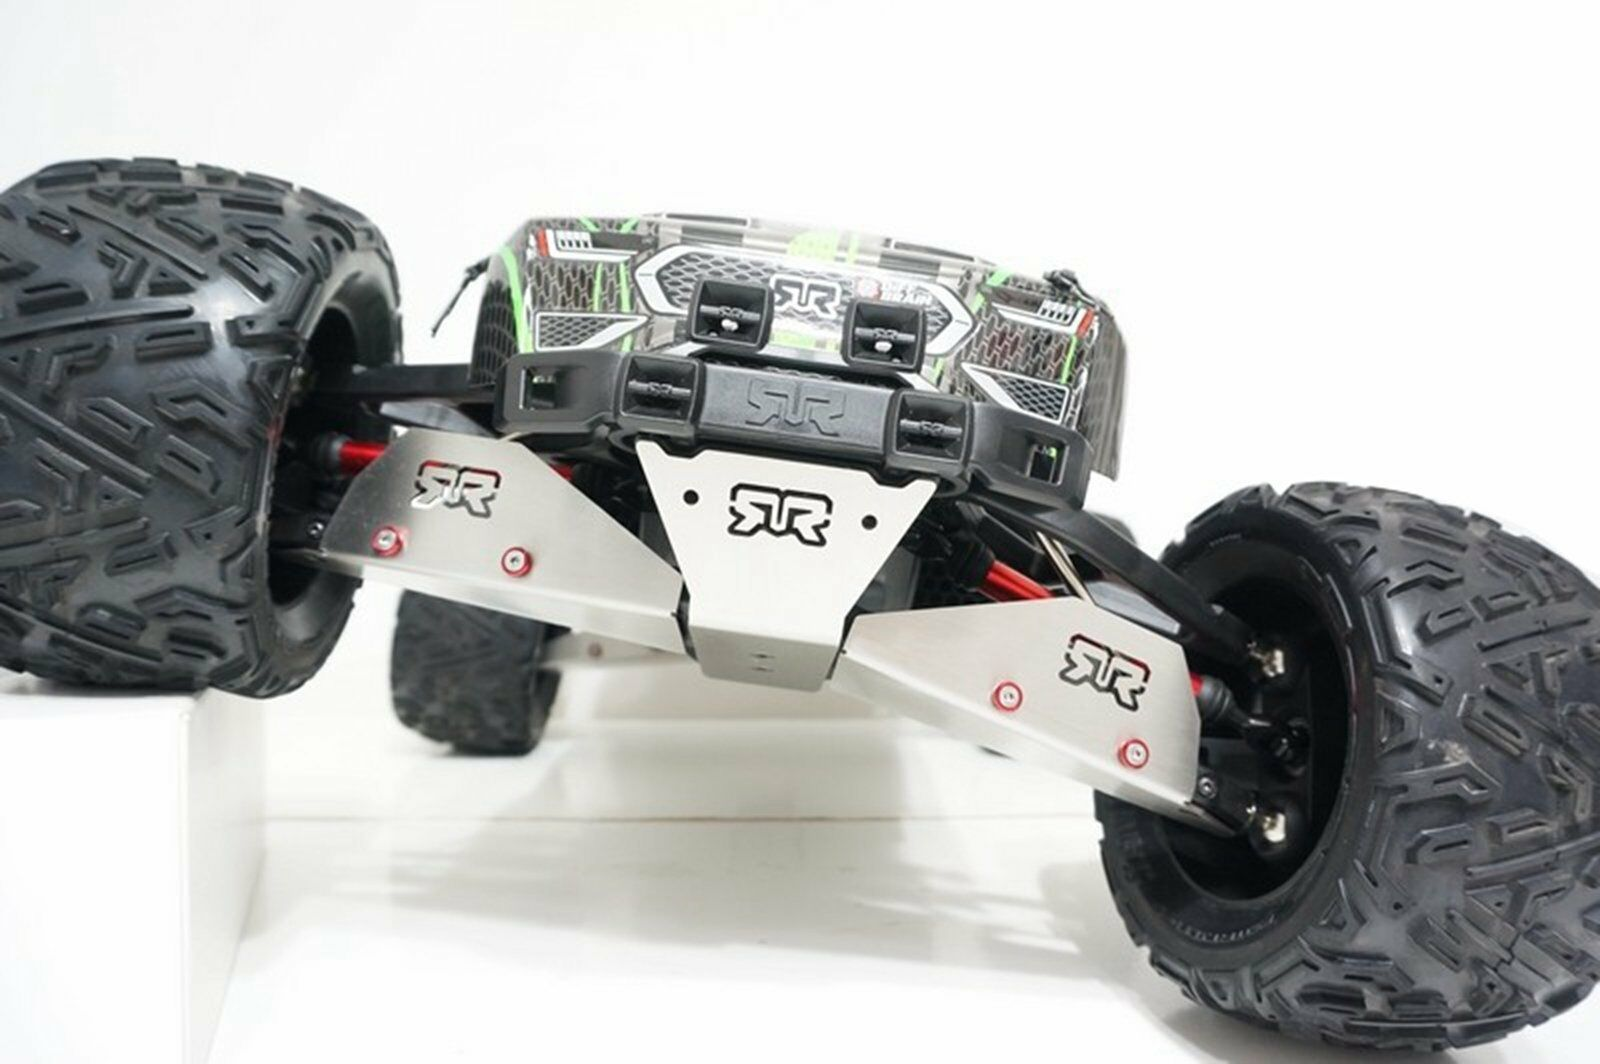 ARGENTO STAINLESS STEEL chassis Armor FRONT & Rear Skid Plate Set per Arrma Nero